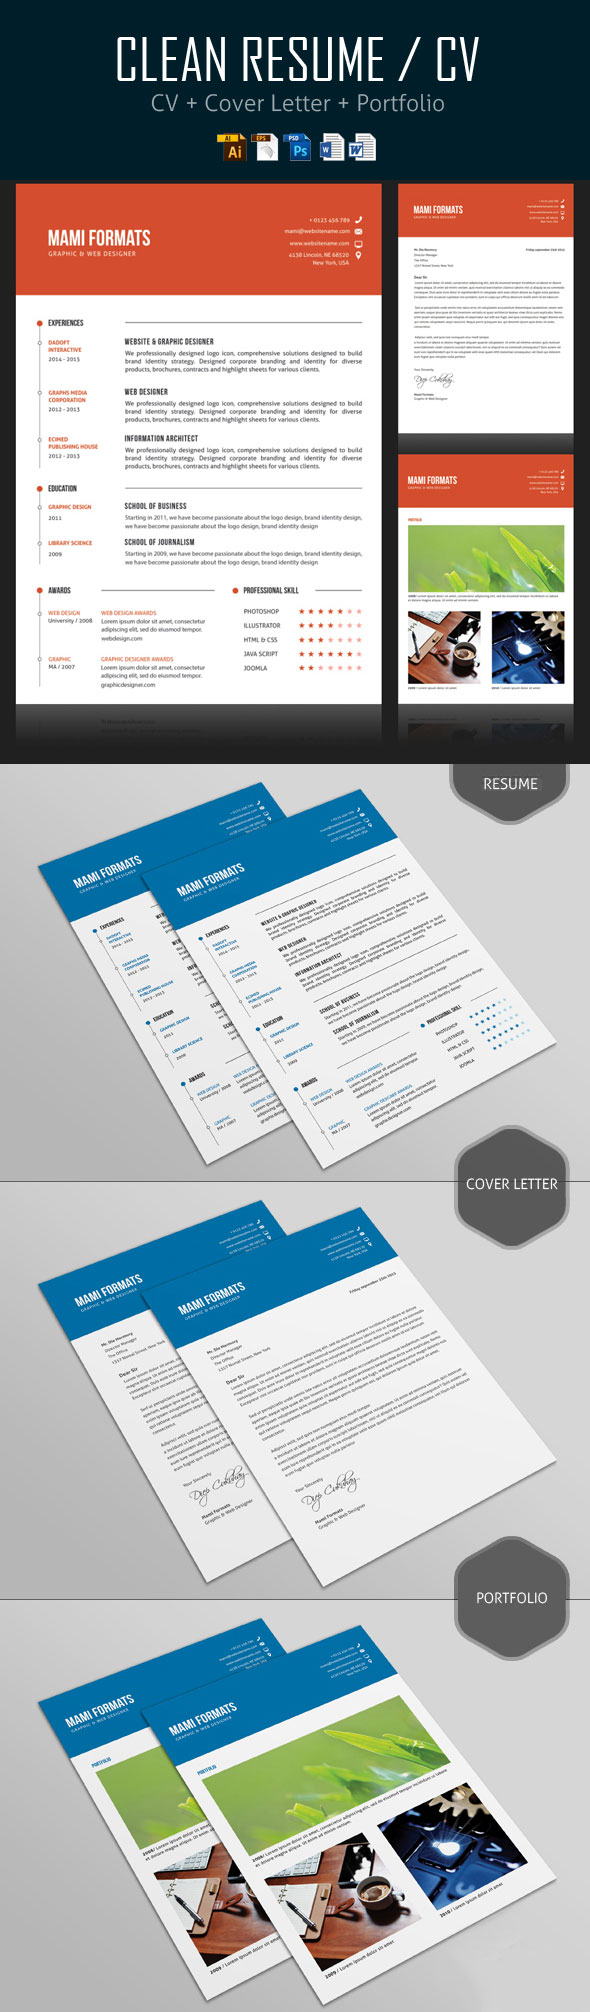 26 Creative CV Resume Templates with Cover Letter Portfolio – Portfolio Cover Page Template